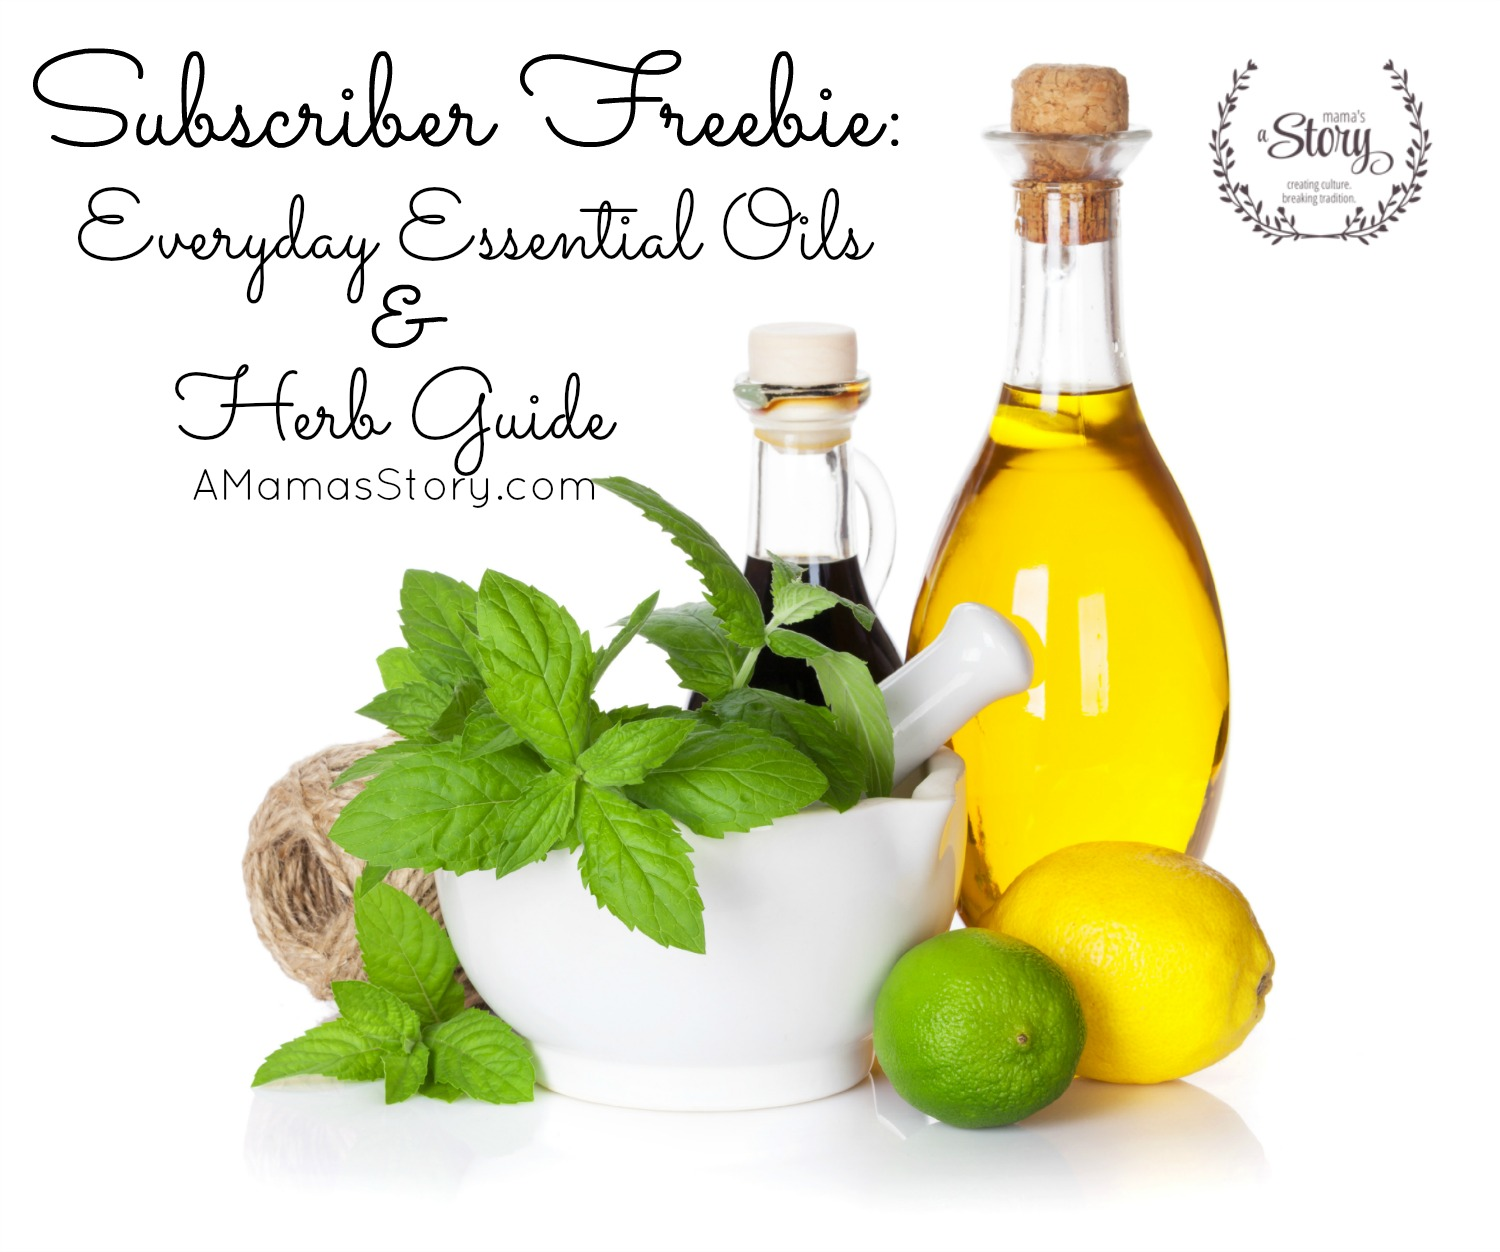 Subscriber Freebie: Everyday Essential Oils & Herbs Guide